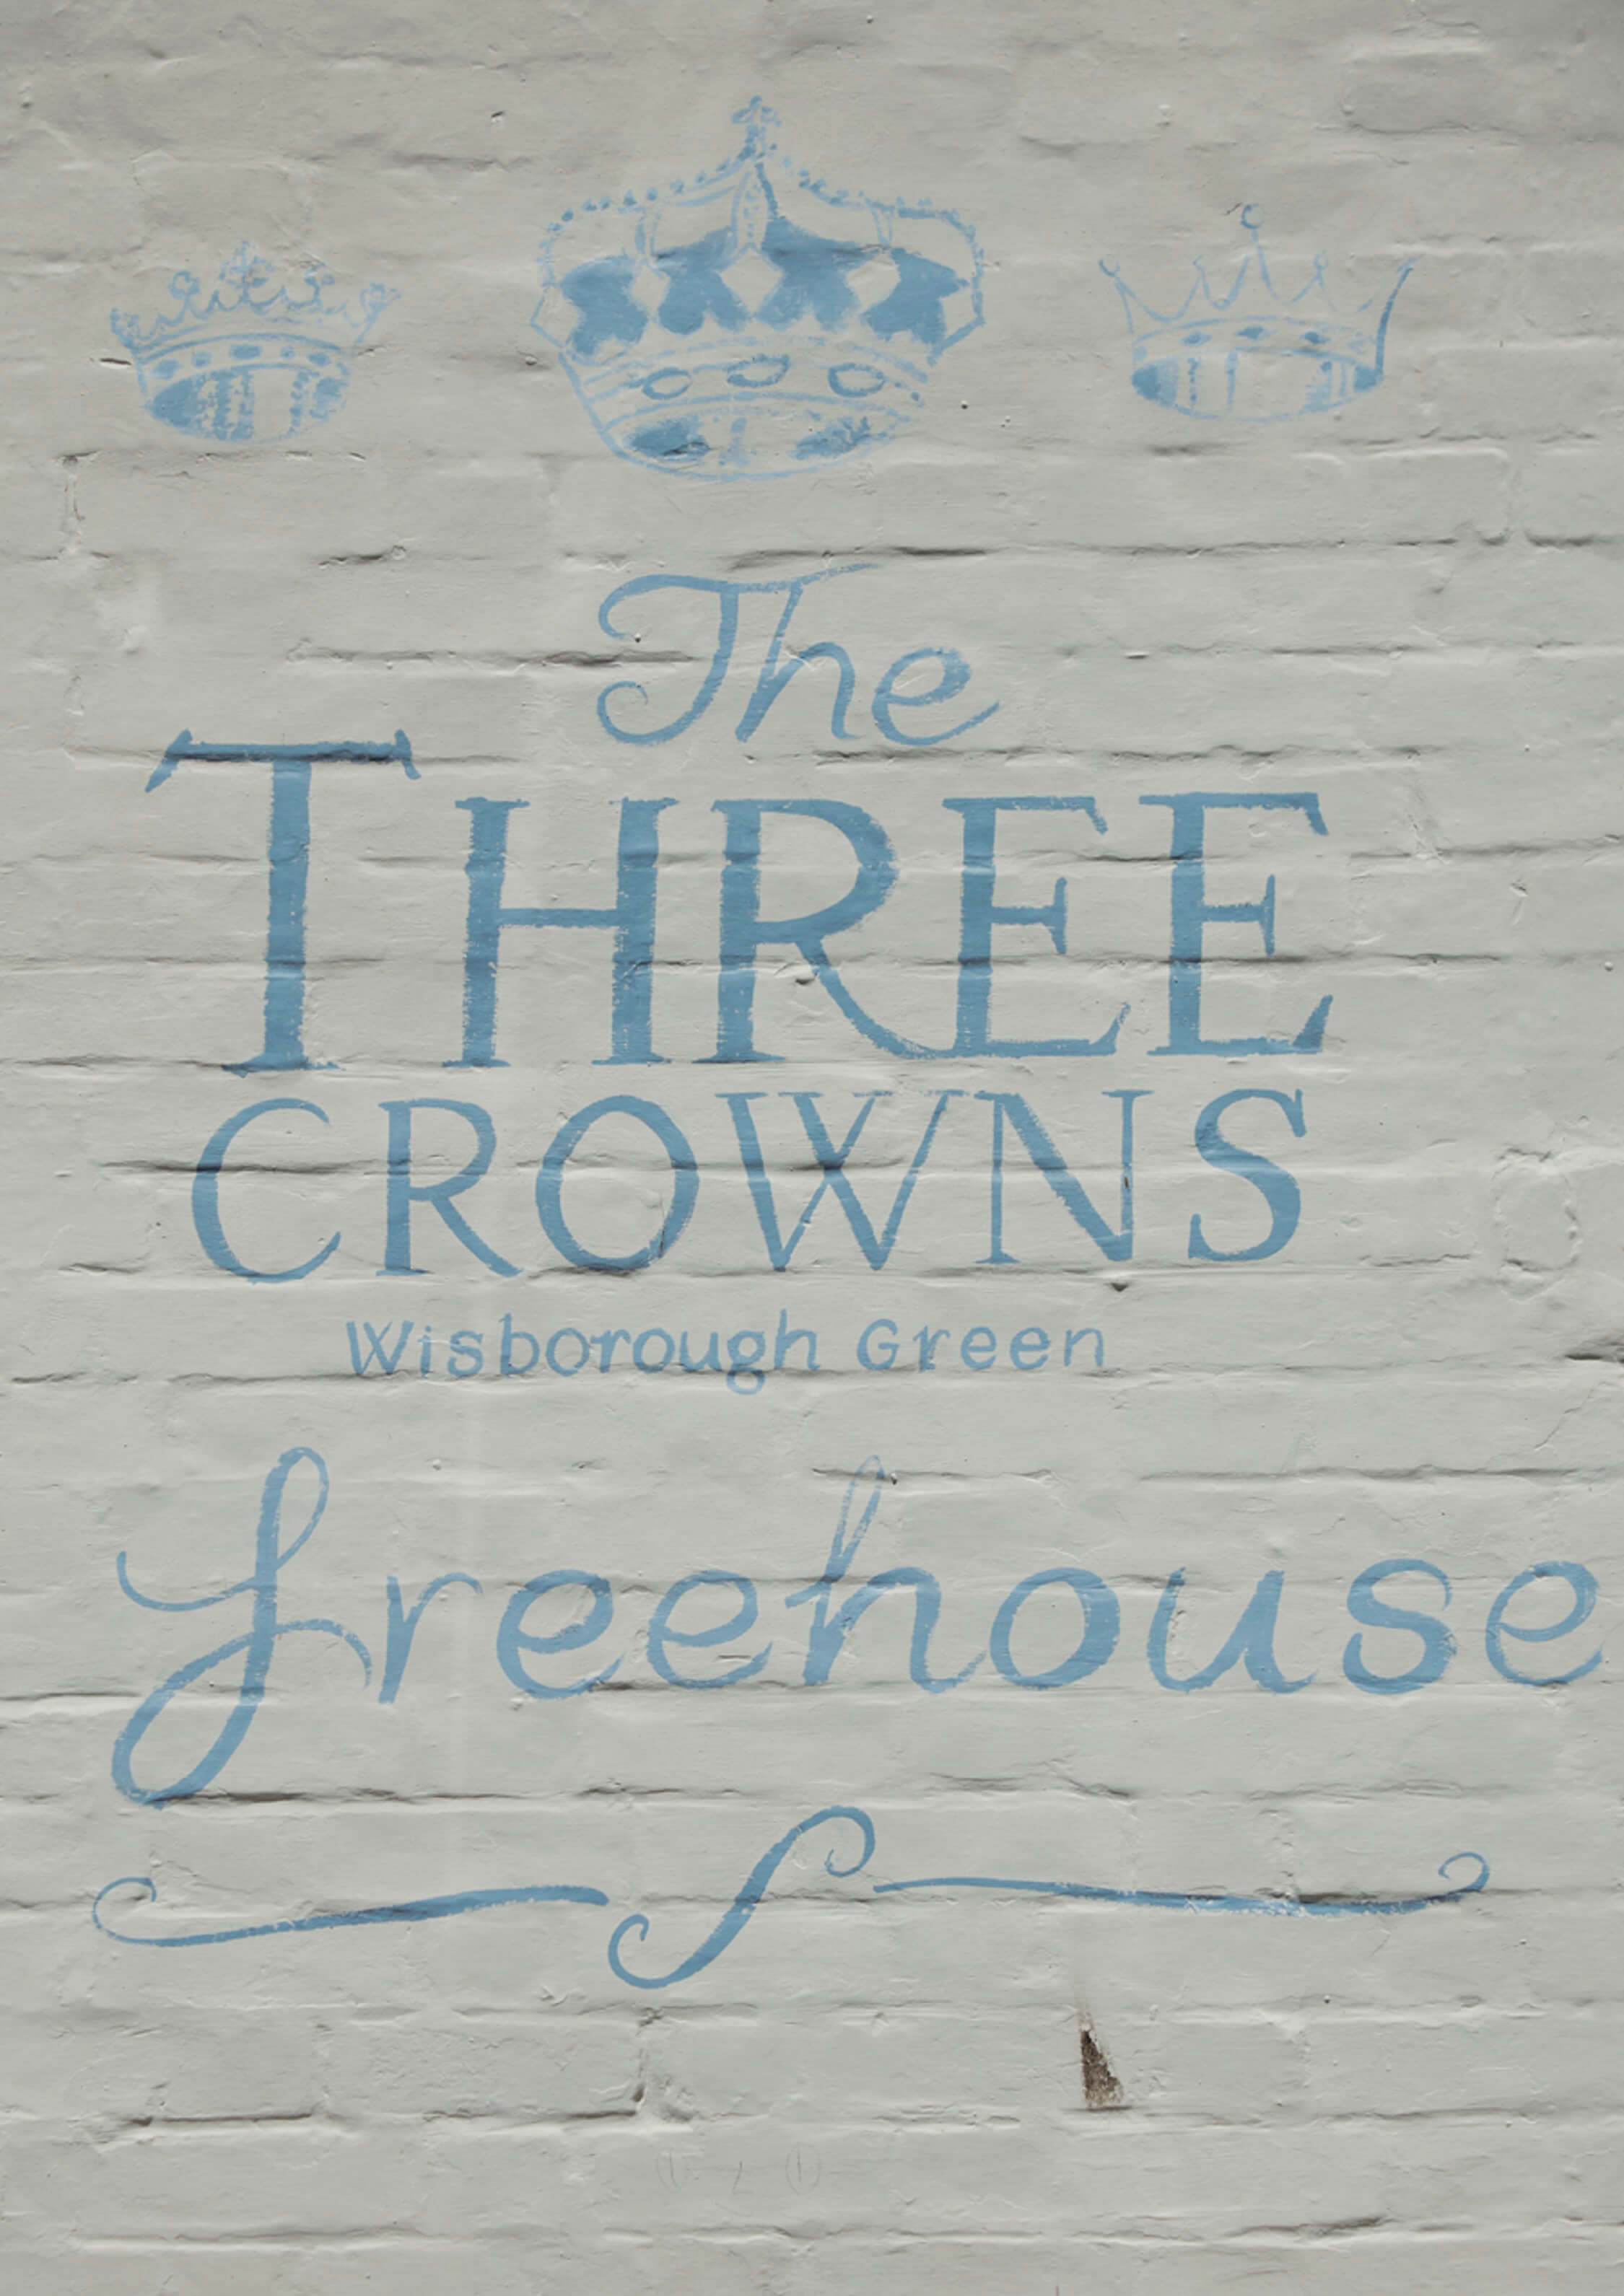 The Three Crowns - fantastic local pub